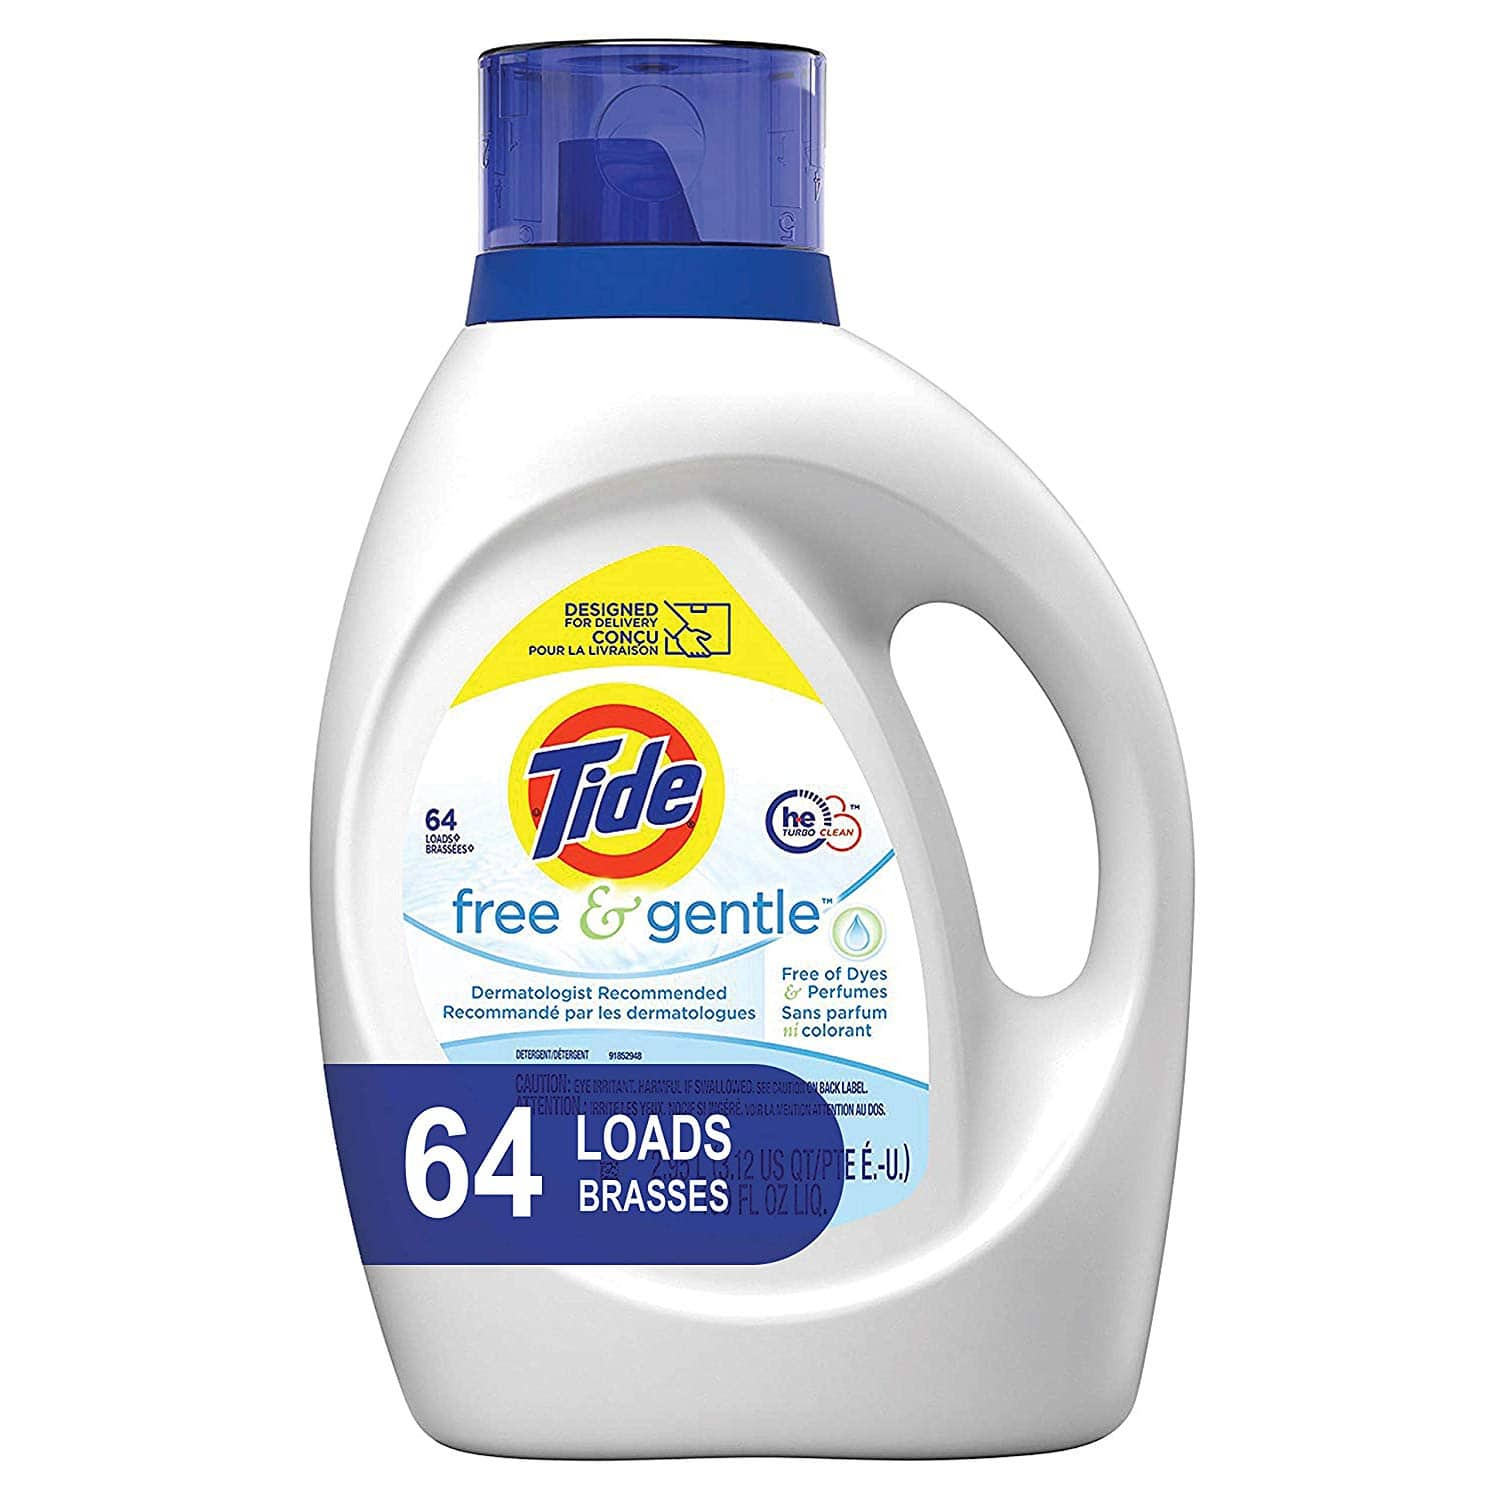 100oz Tide HE Liquid Laundry Detergent (Free & Gentle or Original) 3 for $26 & More + Free S&H